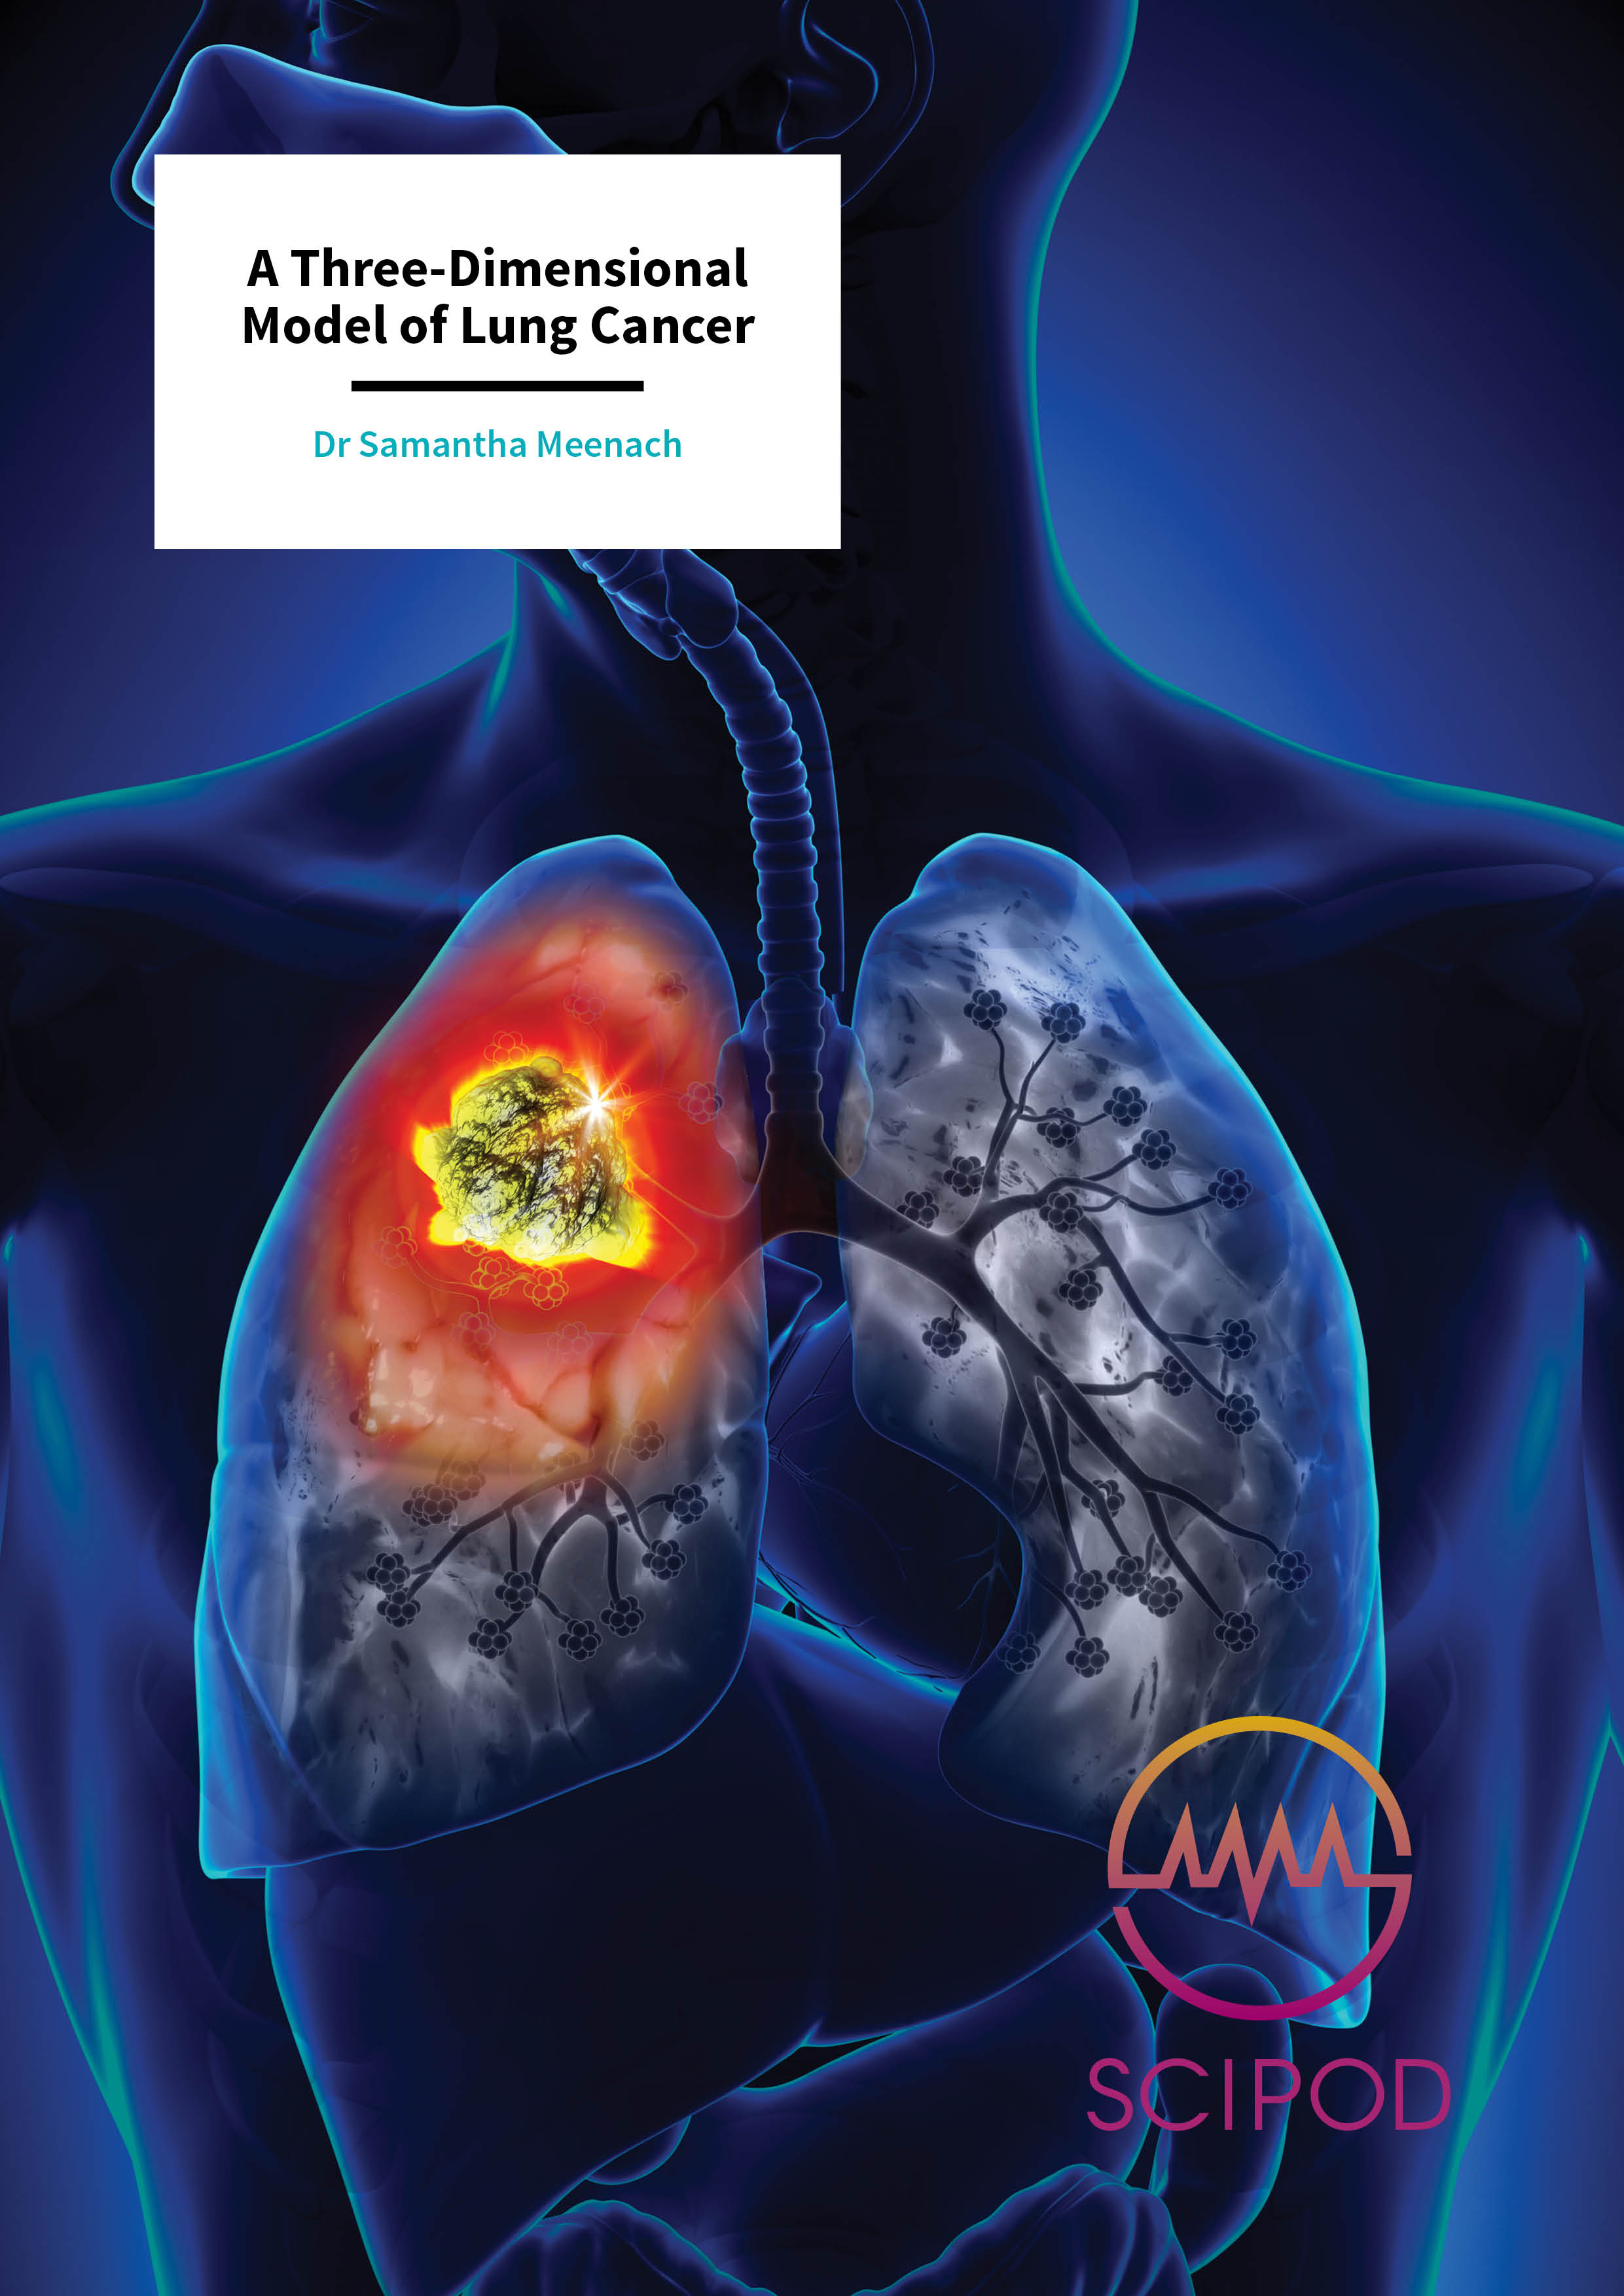 A Three-Dimensional Model of Lung Cancer – Dr Samantha Meenach, University of Rhode Island